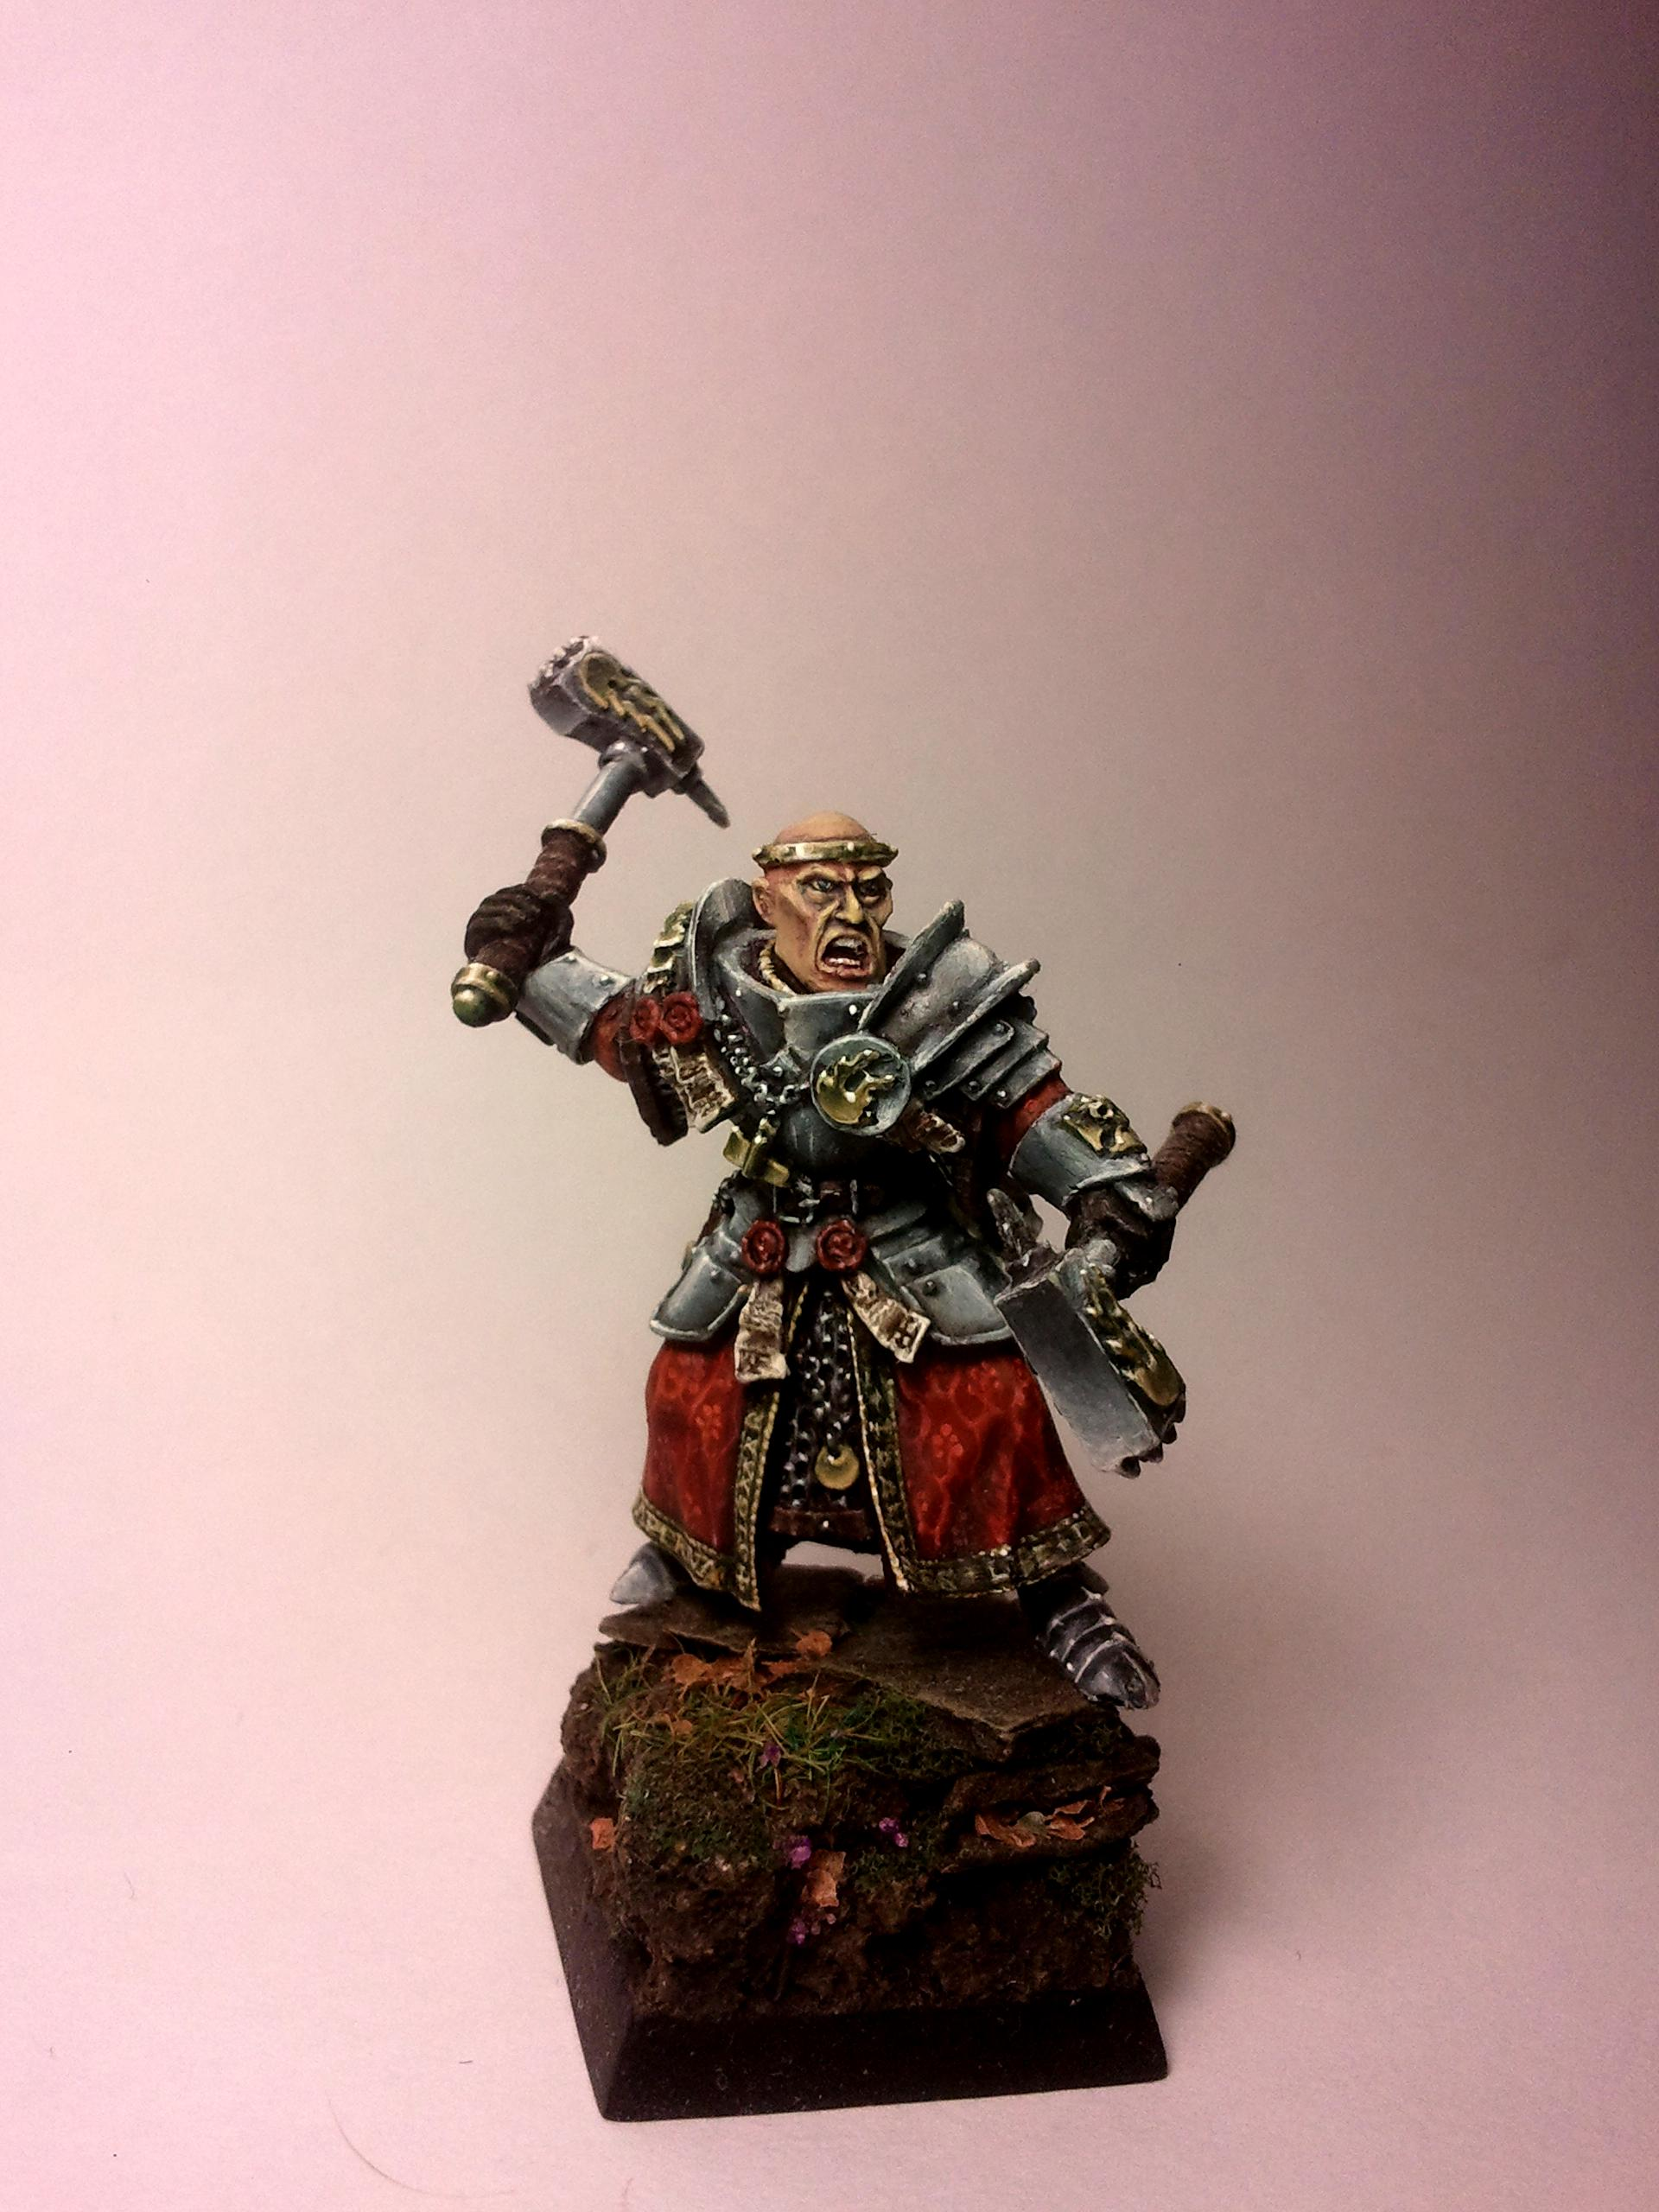 Age Of Sigmar, Empire, Freehand, Non-Metallic Metal, Priest, Scenic, Warhammer Fantasy, Warrior Priest